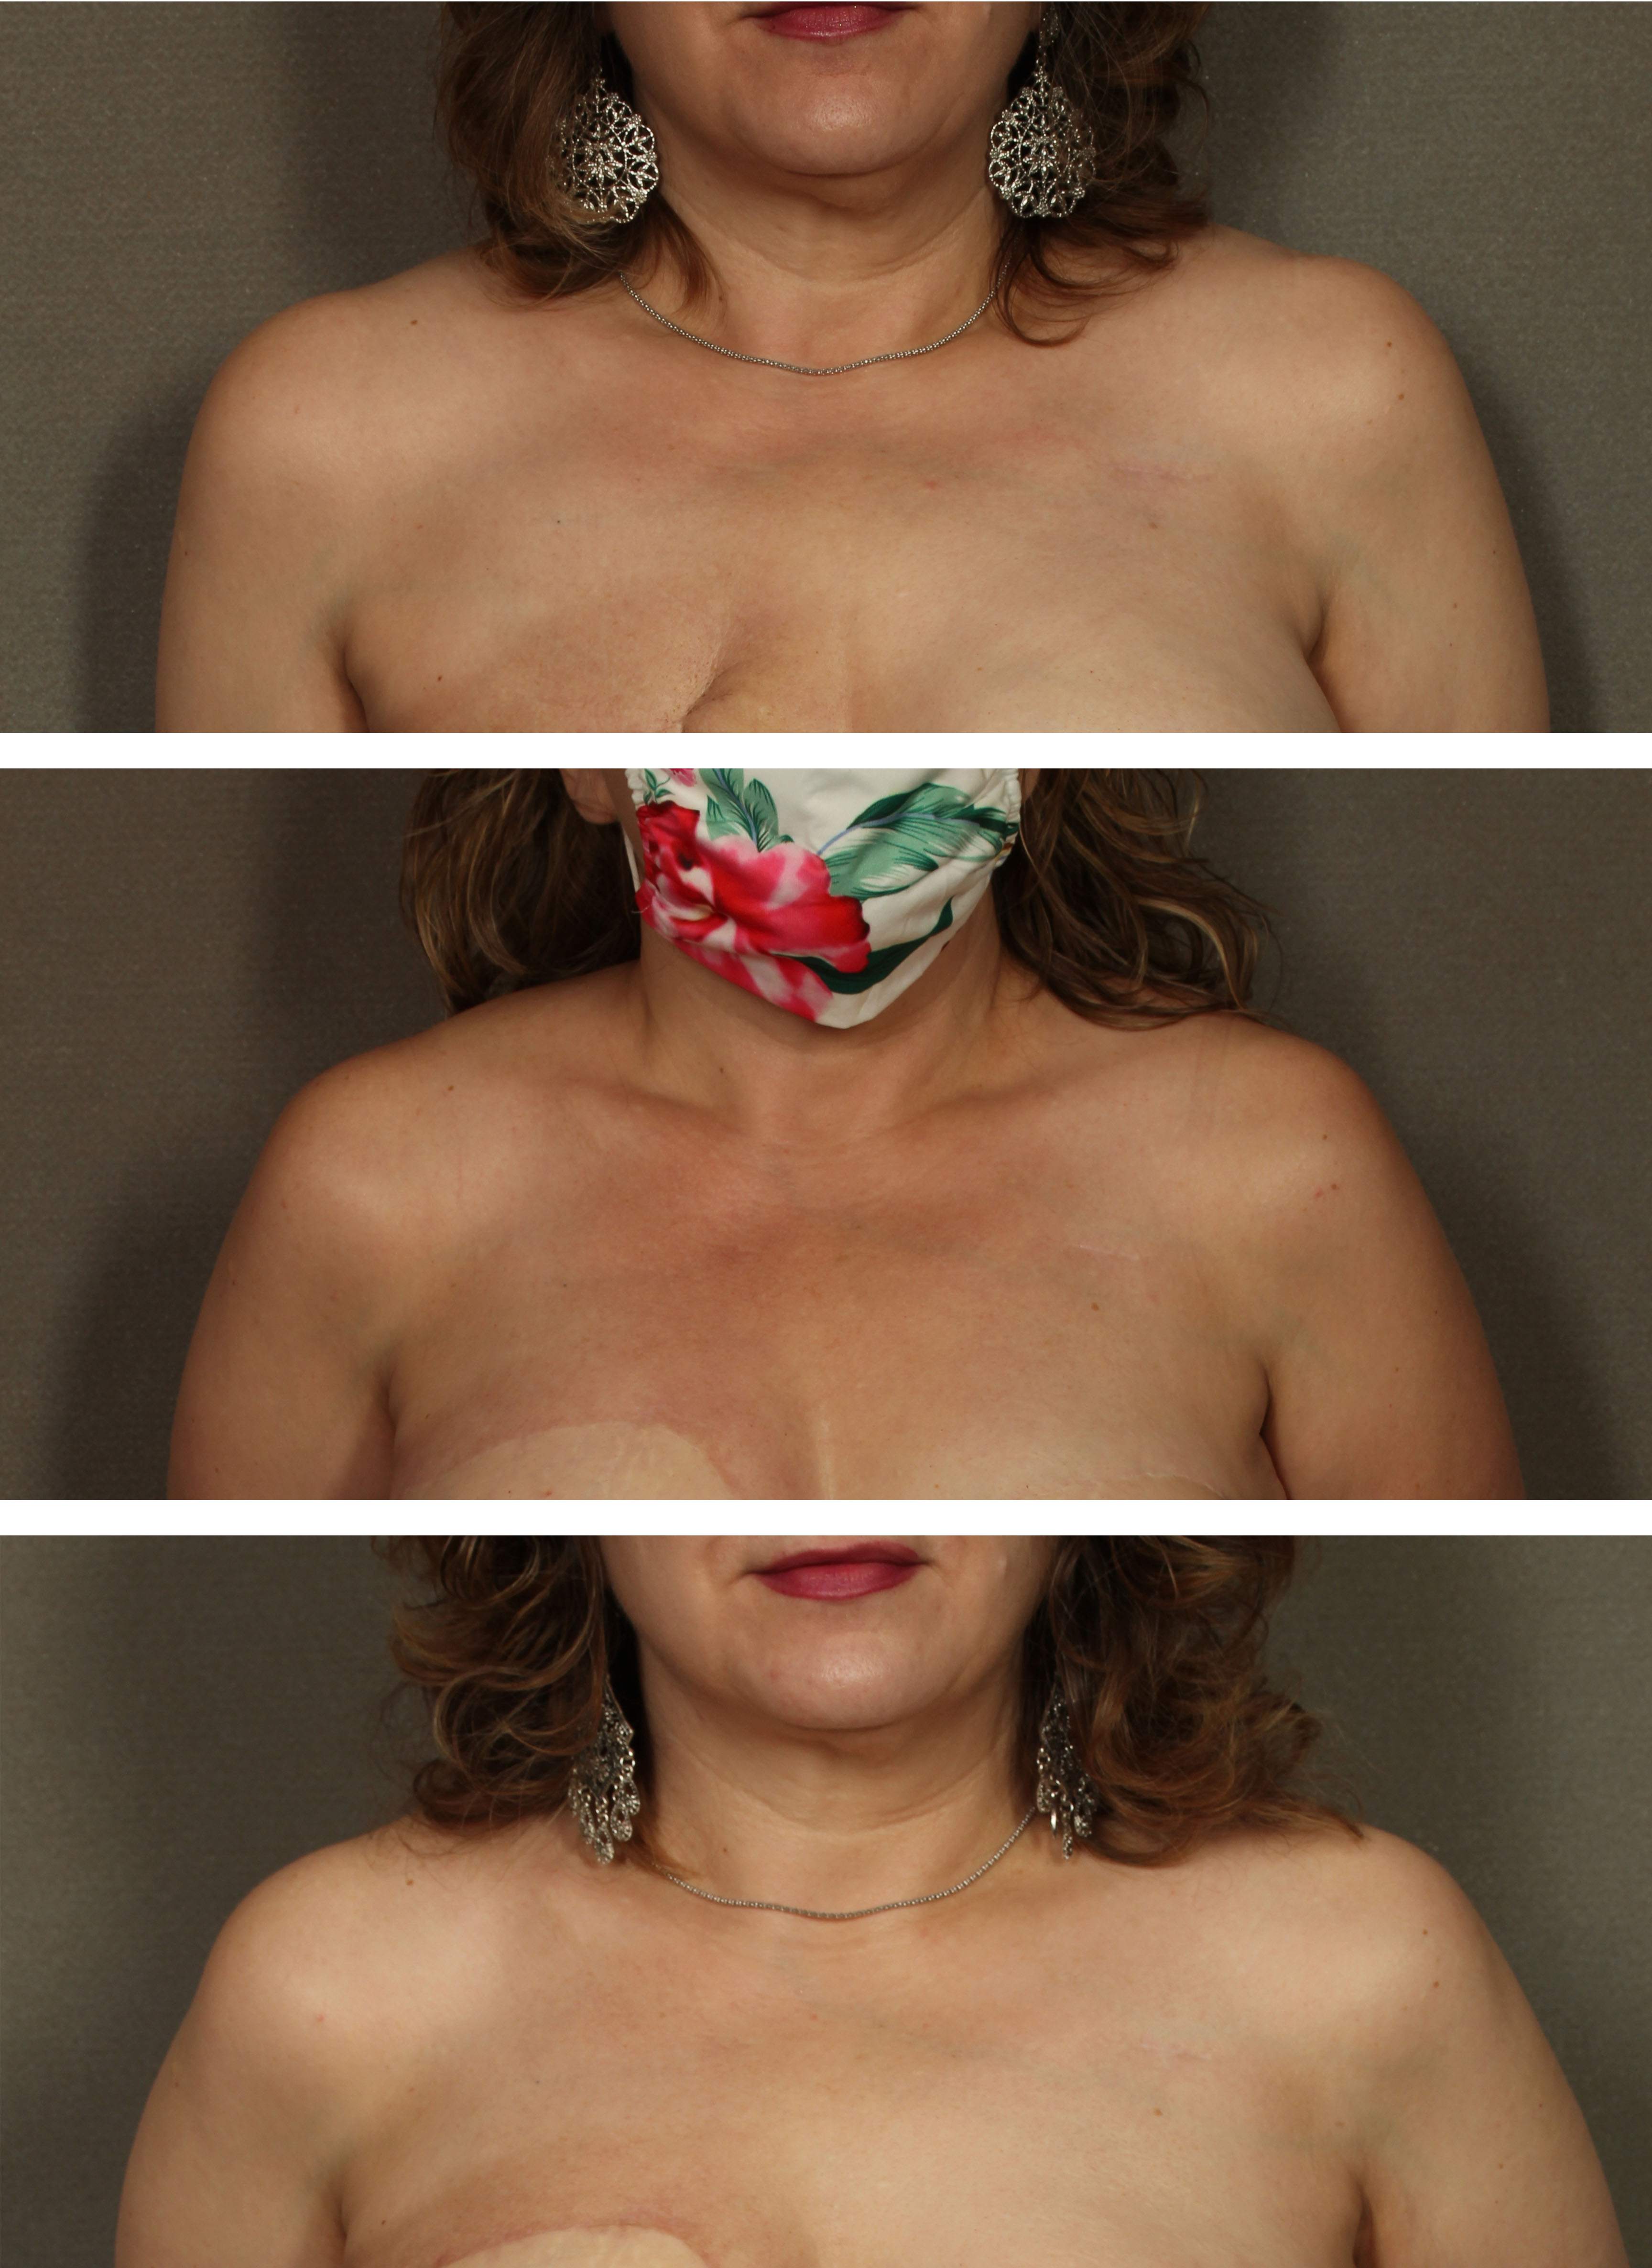 before and after woman smiling 3 views